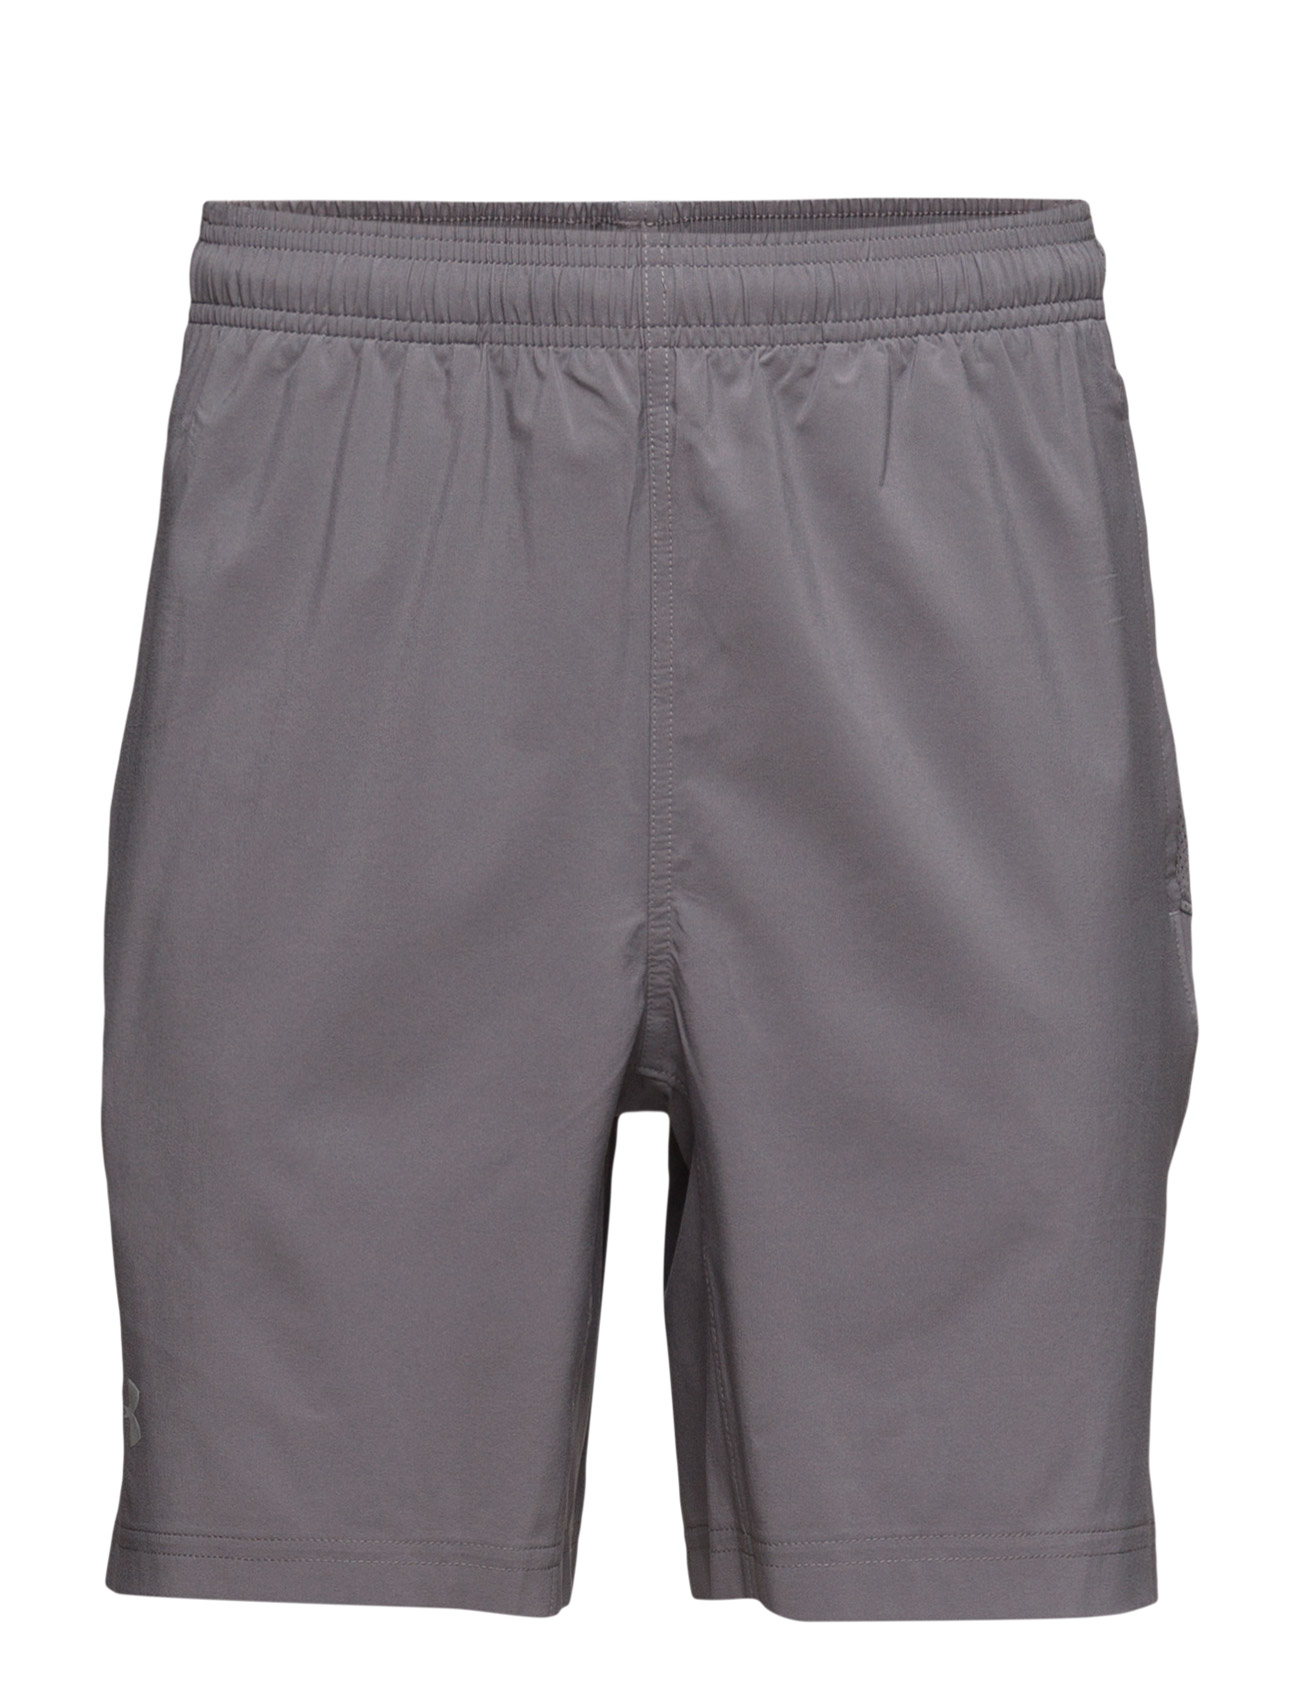 under armour – Ua perf 7'' no liner short på boozt.com dk